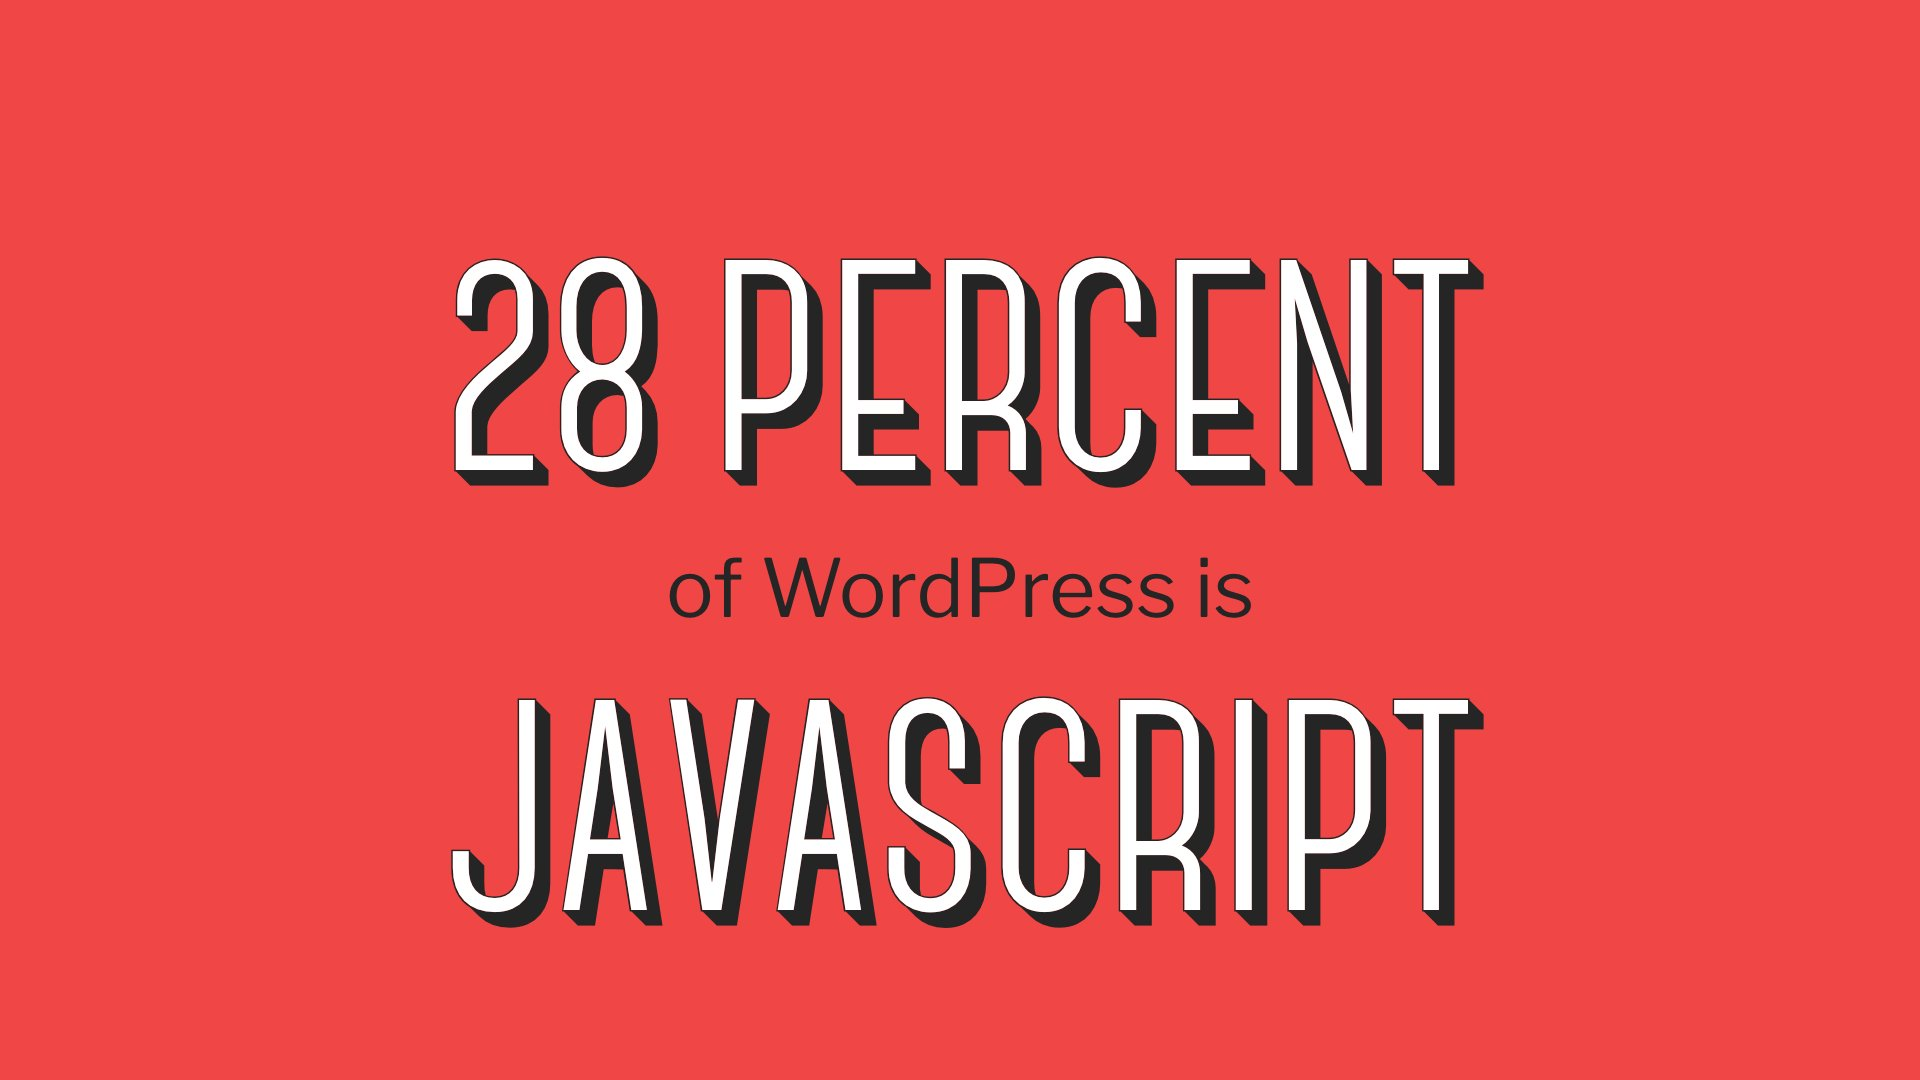 "Let's return to ""Learn Javascript Deeply"" - 28% of WordPress is Javascript. #wcus https://t.co/LNo9FgkAlQ"